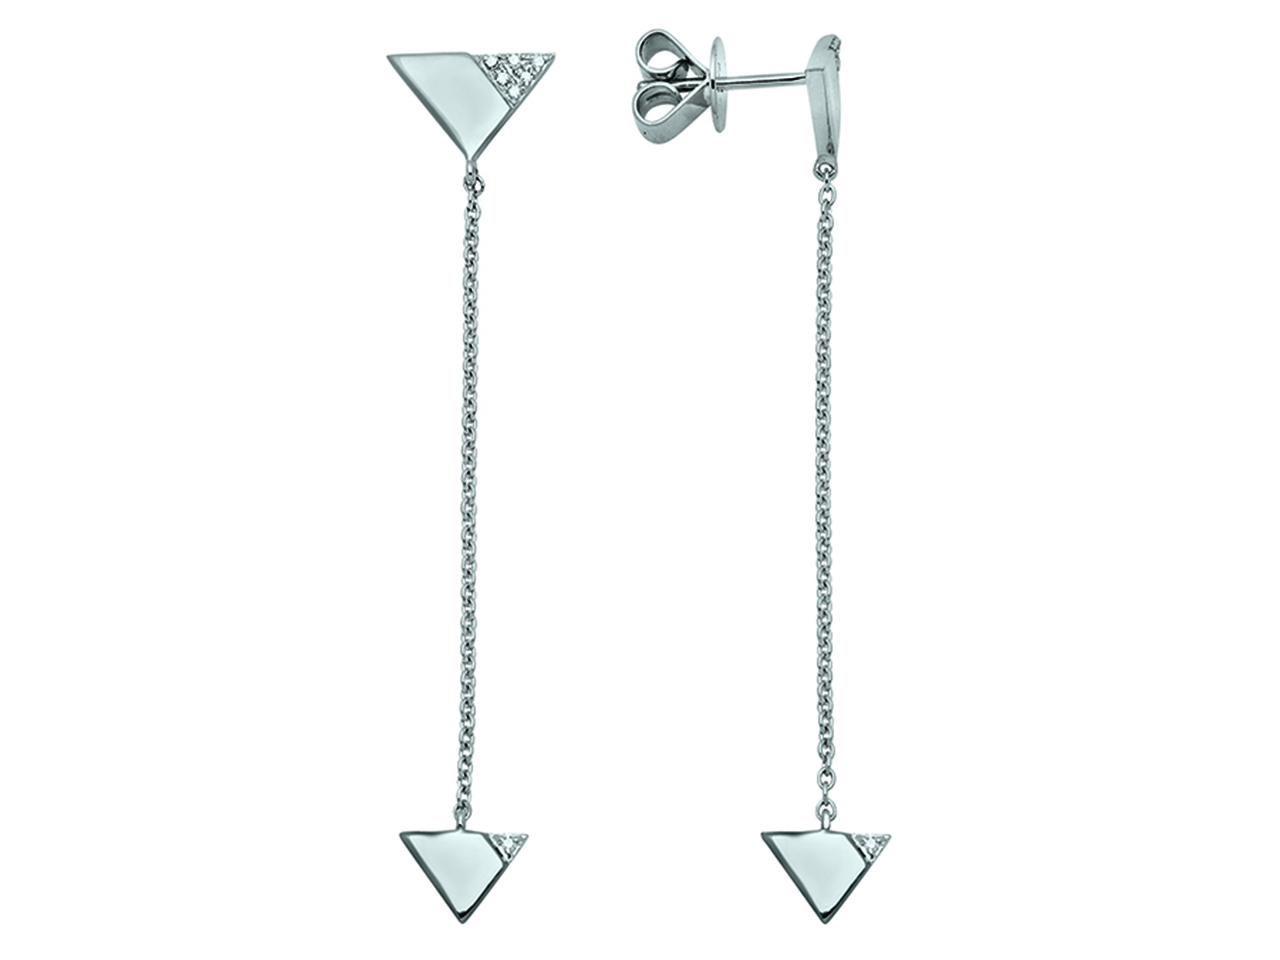 Boucles d'Oreilles pendantes Or gris 18k, Triangles, diamants 0,05ct